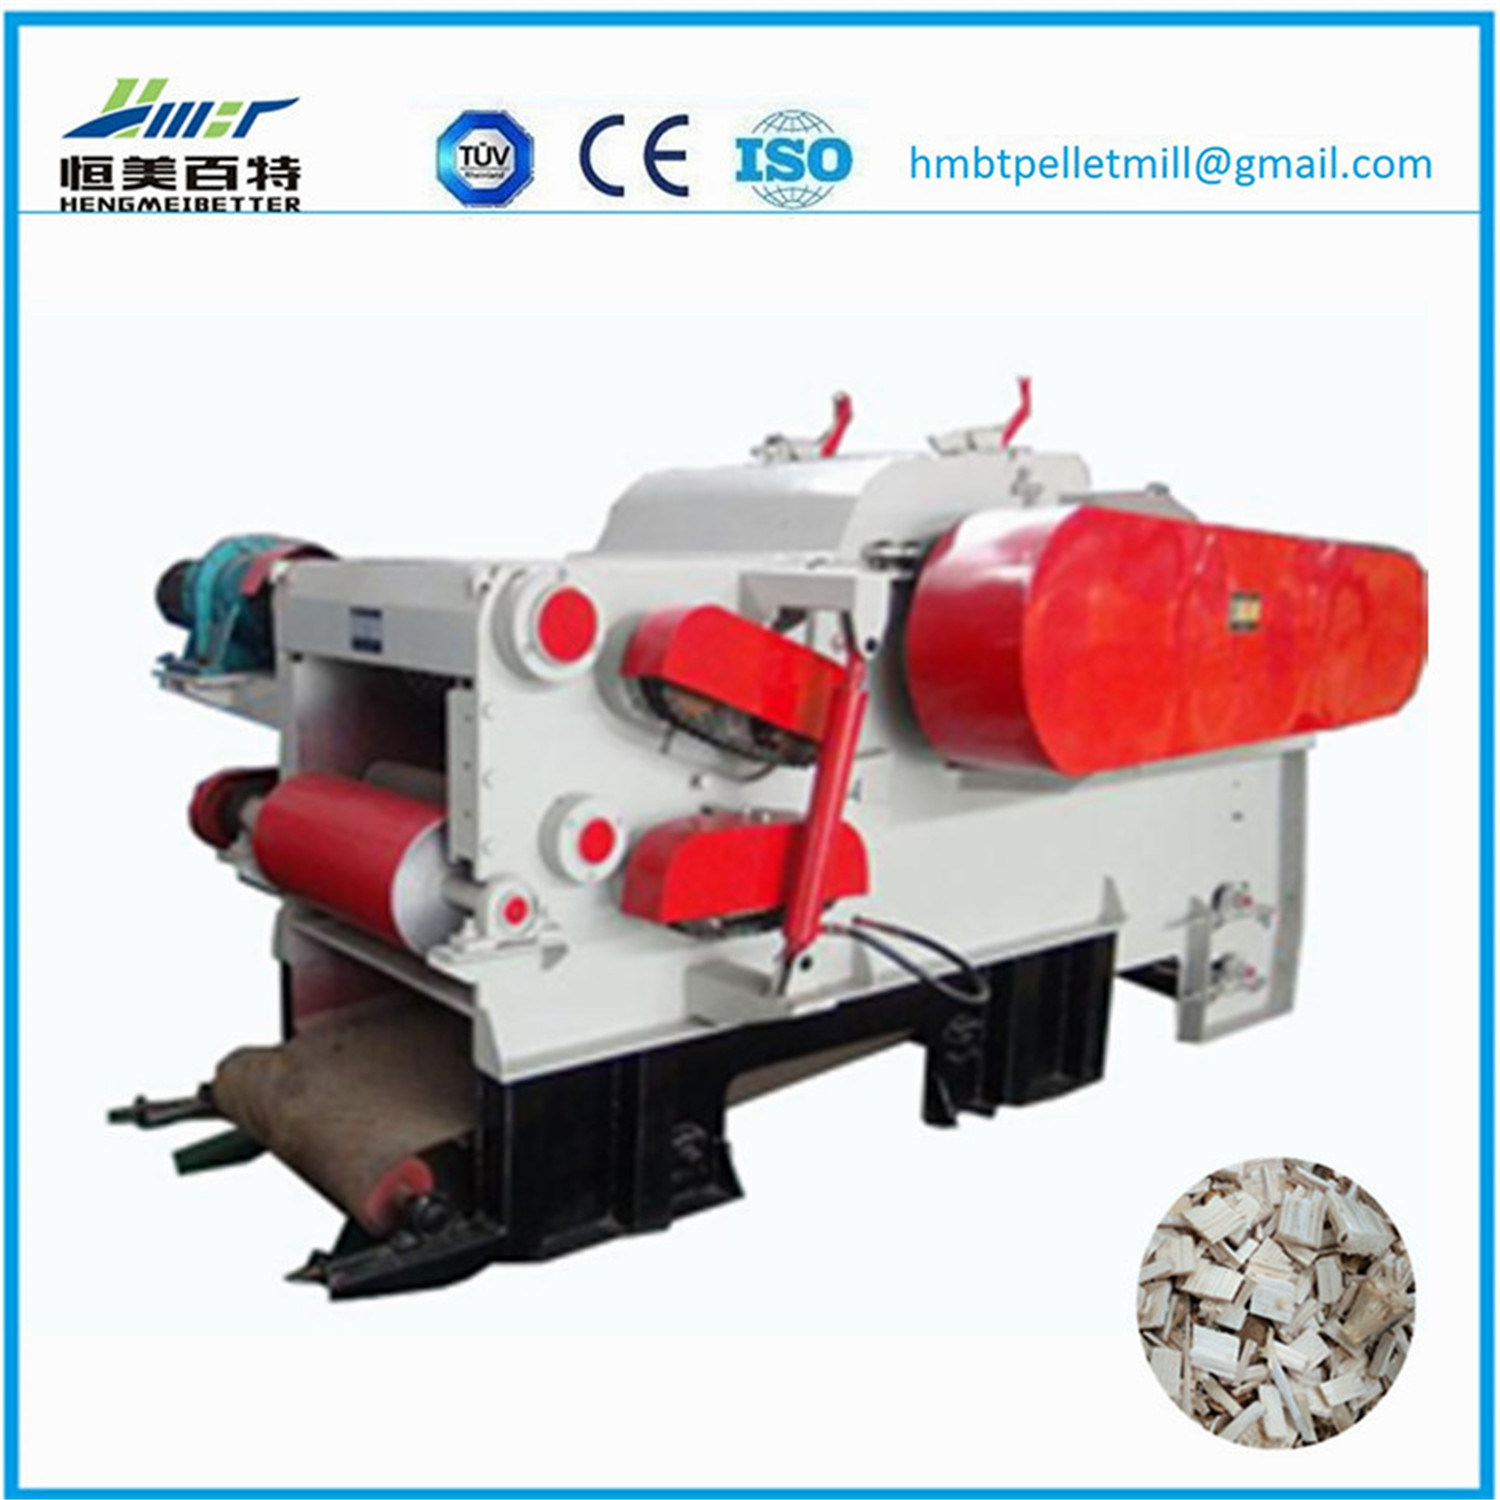 High Quality Wood Chipper Shredder Machine / Electric Wood Chipper Machine